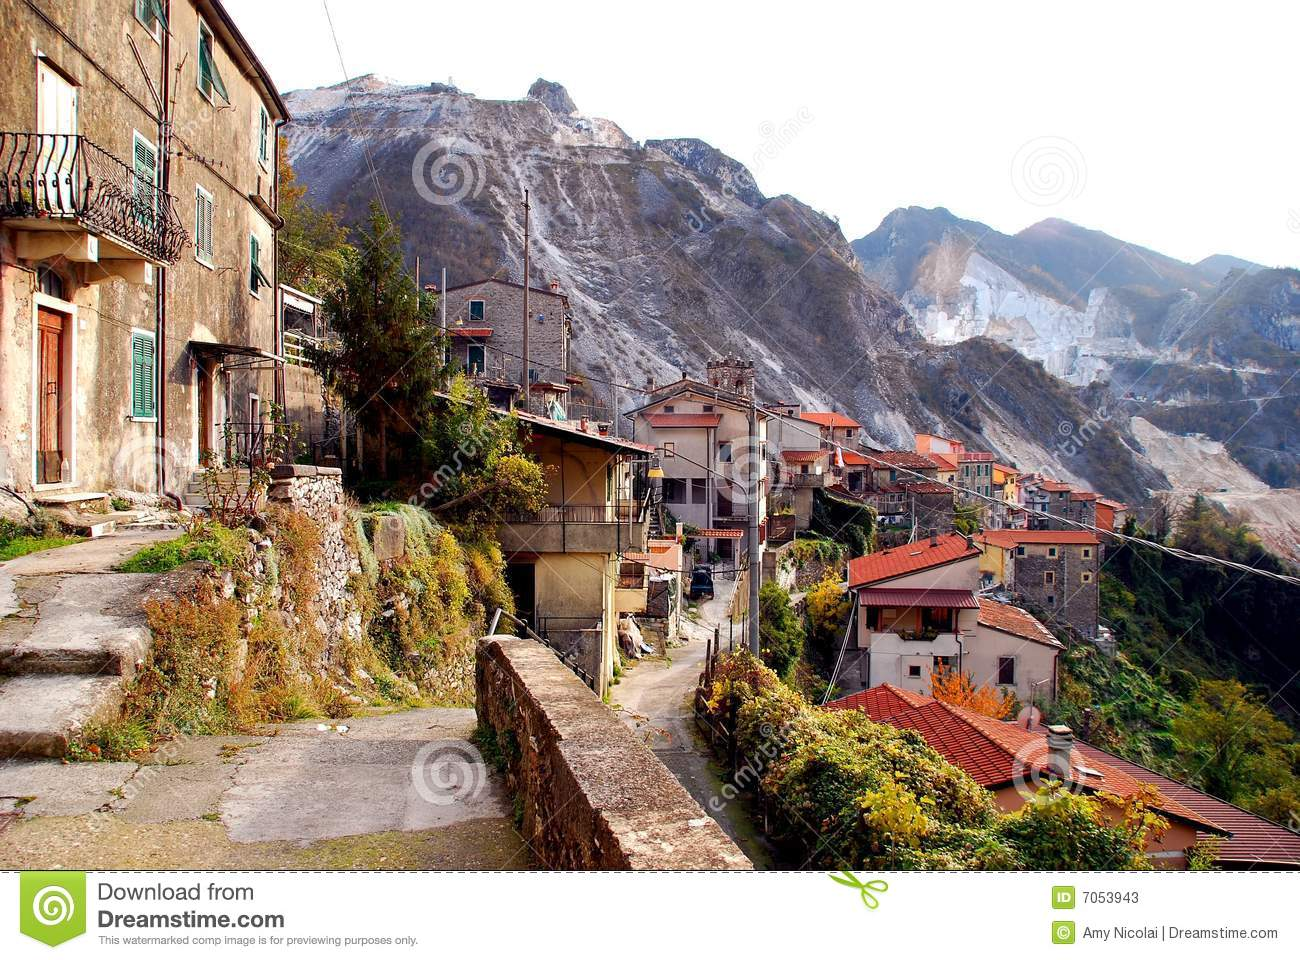 ... of Colonnata, in the marble mountains above Carrara in Tuscany